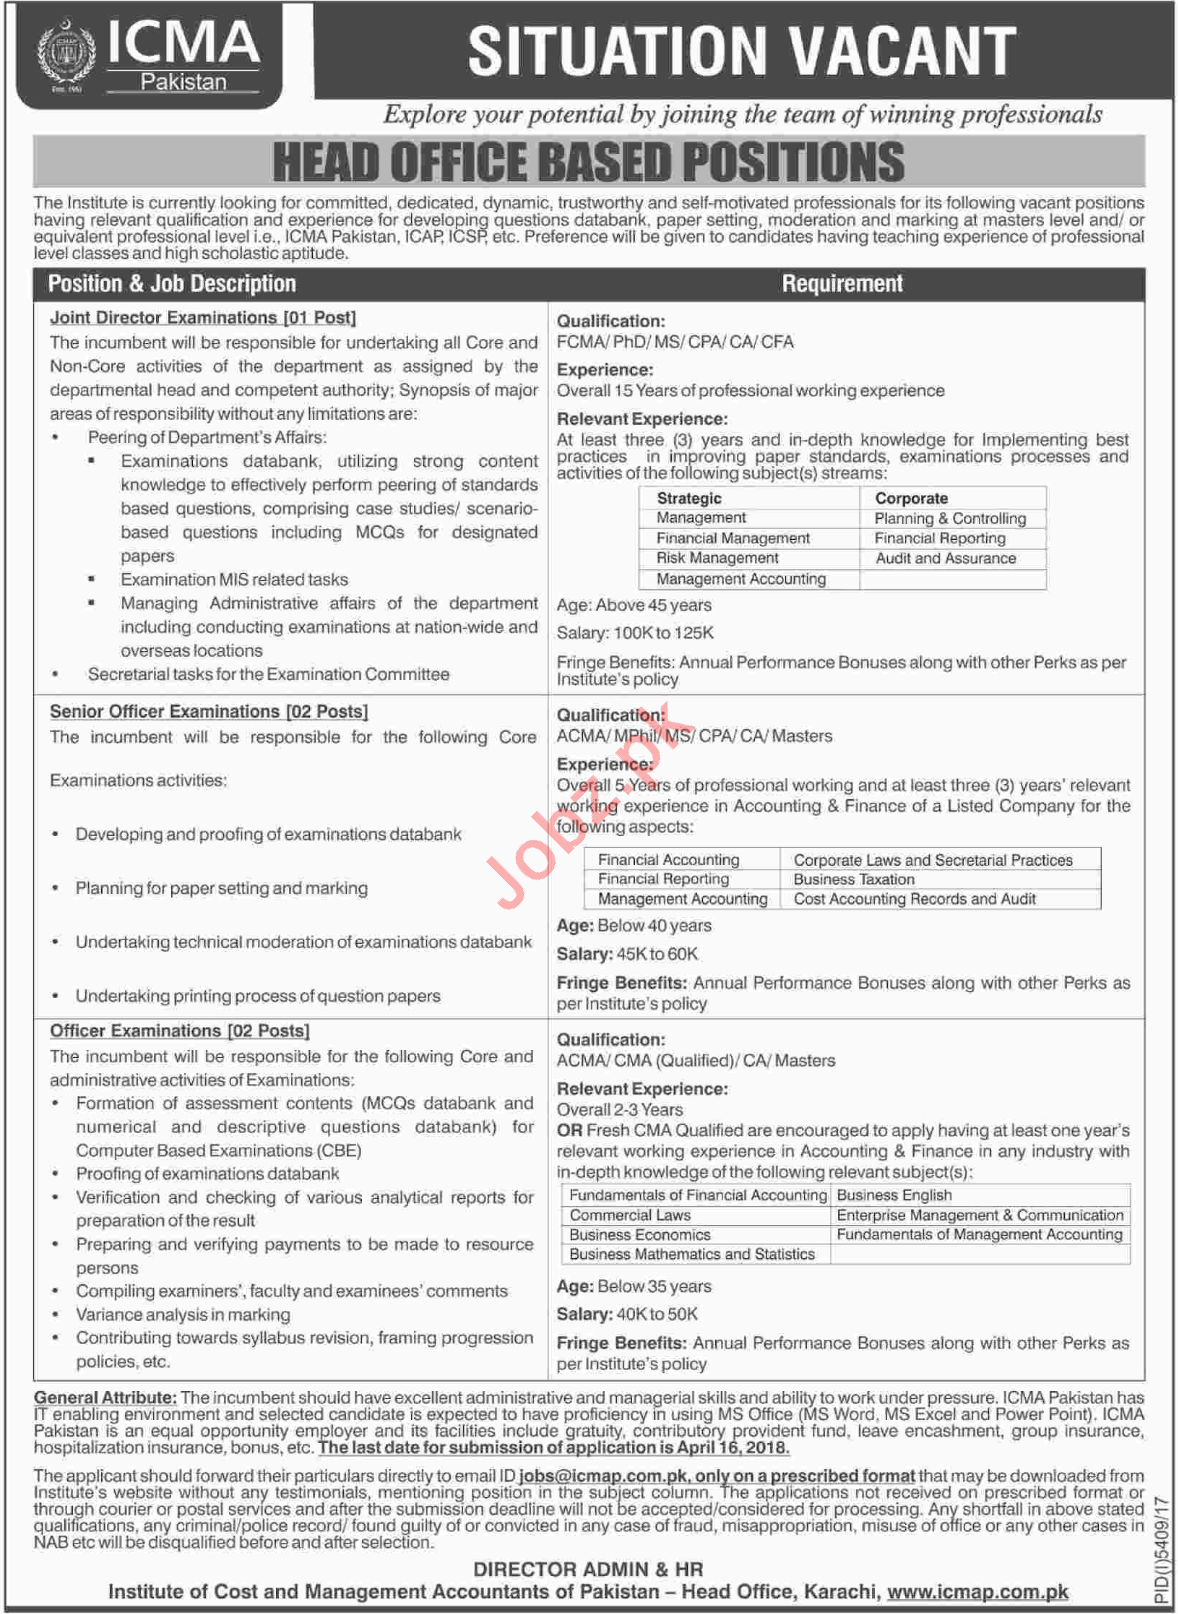 Institute of Cost and Management Accountants of Pakistan Job